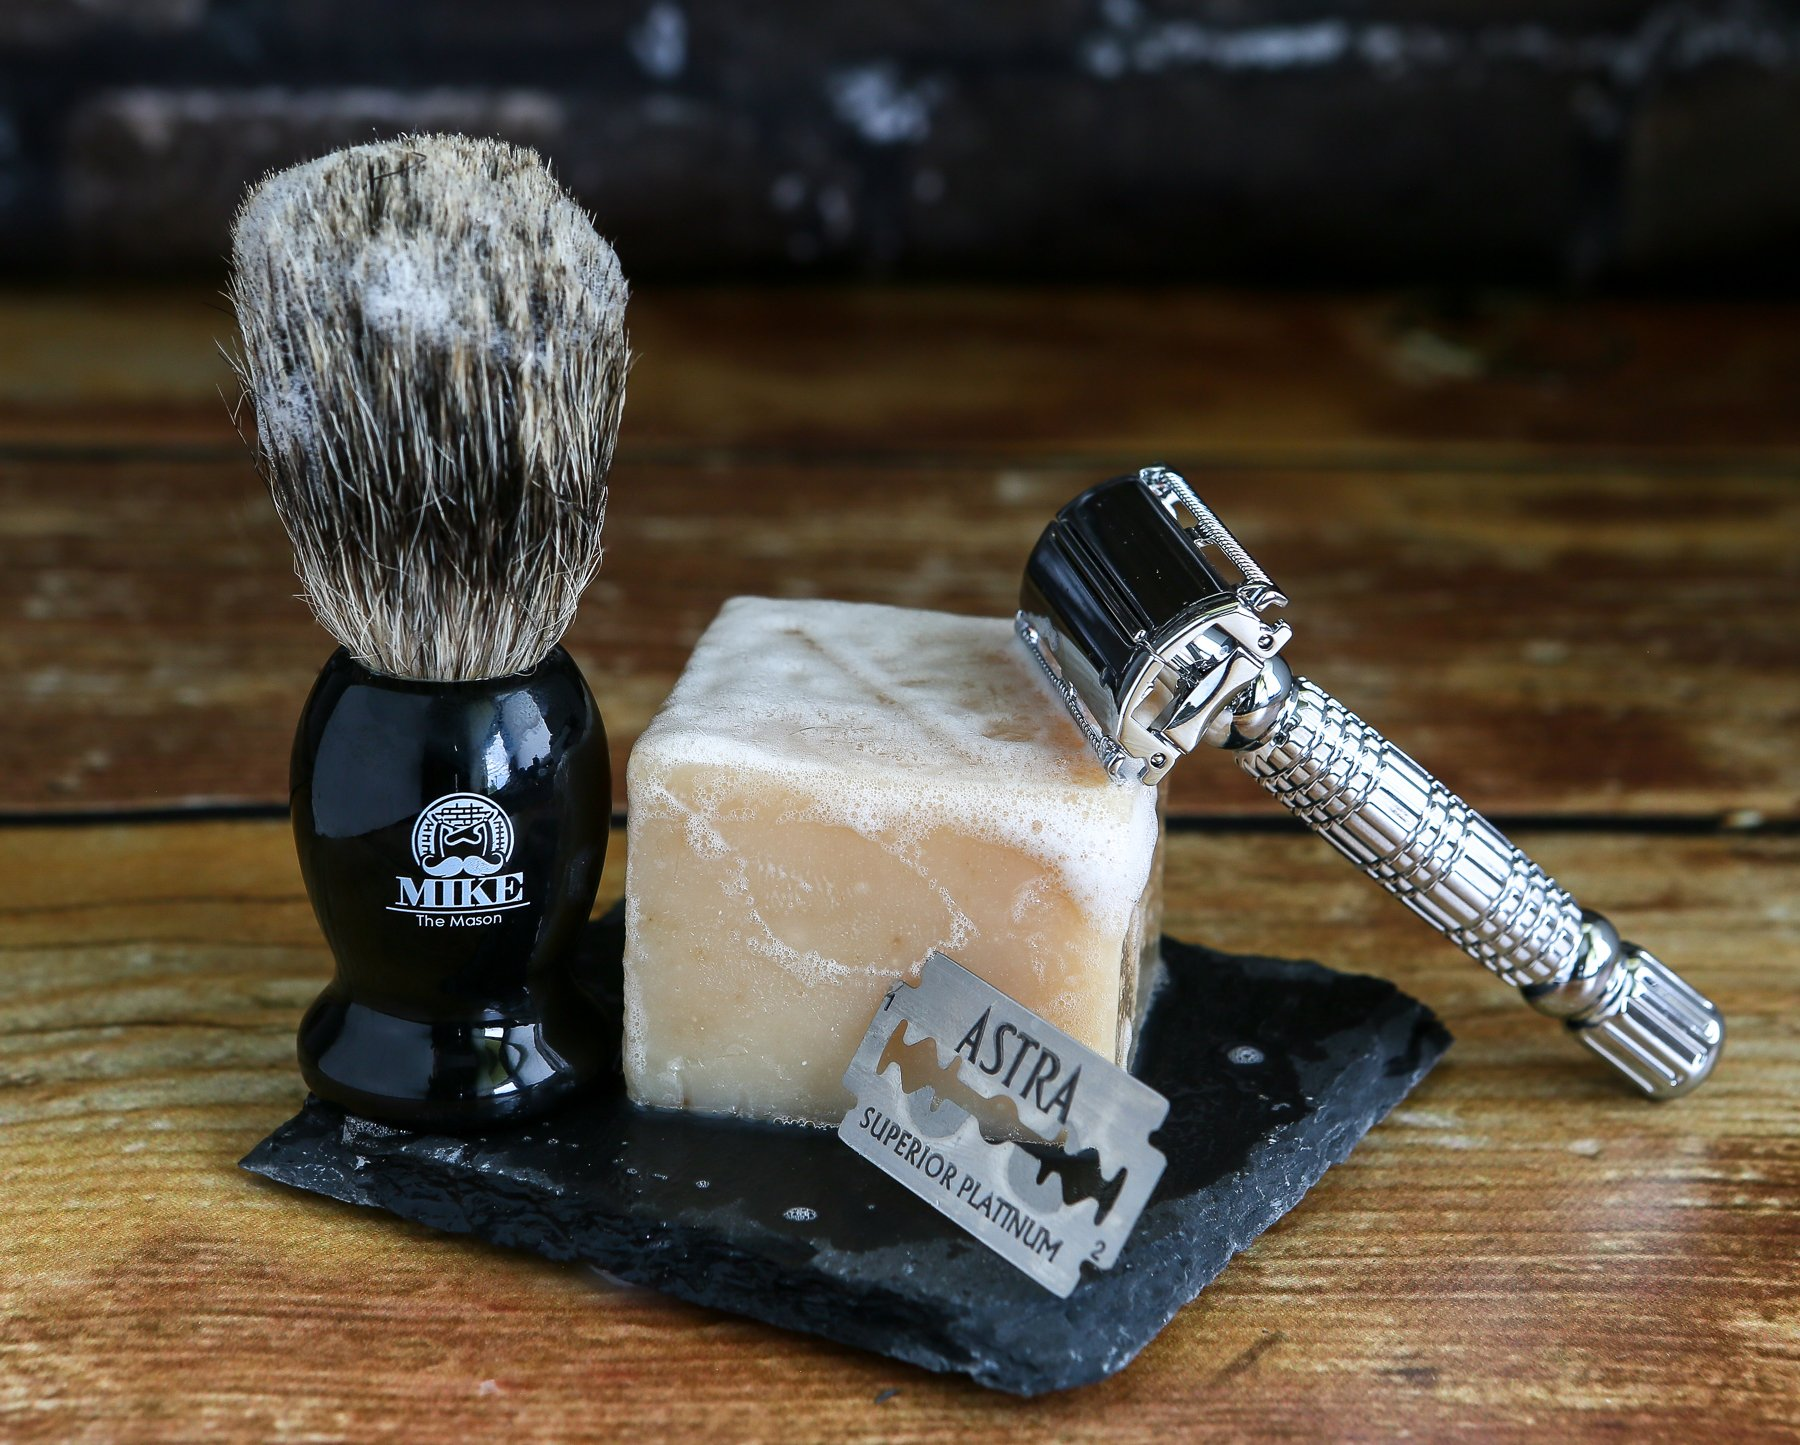 Complete Wet Shave Kit | Mike the Mason | Gift Set Includes: 1 Hawk Razor, 1 Pure 100% Badger Hair Brush, 1 Organic Honey Oatmeal Shave Bar, 5 Premium Mens Blades, and a Razor Stand by Mike the Mason